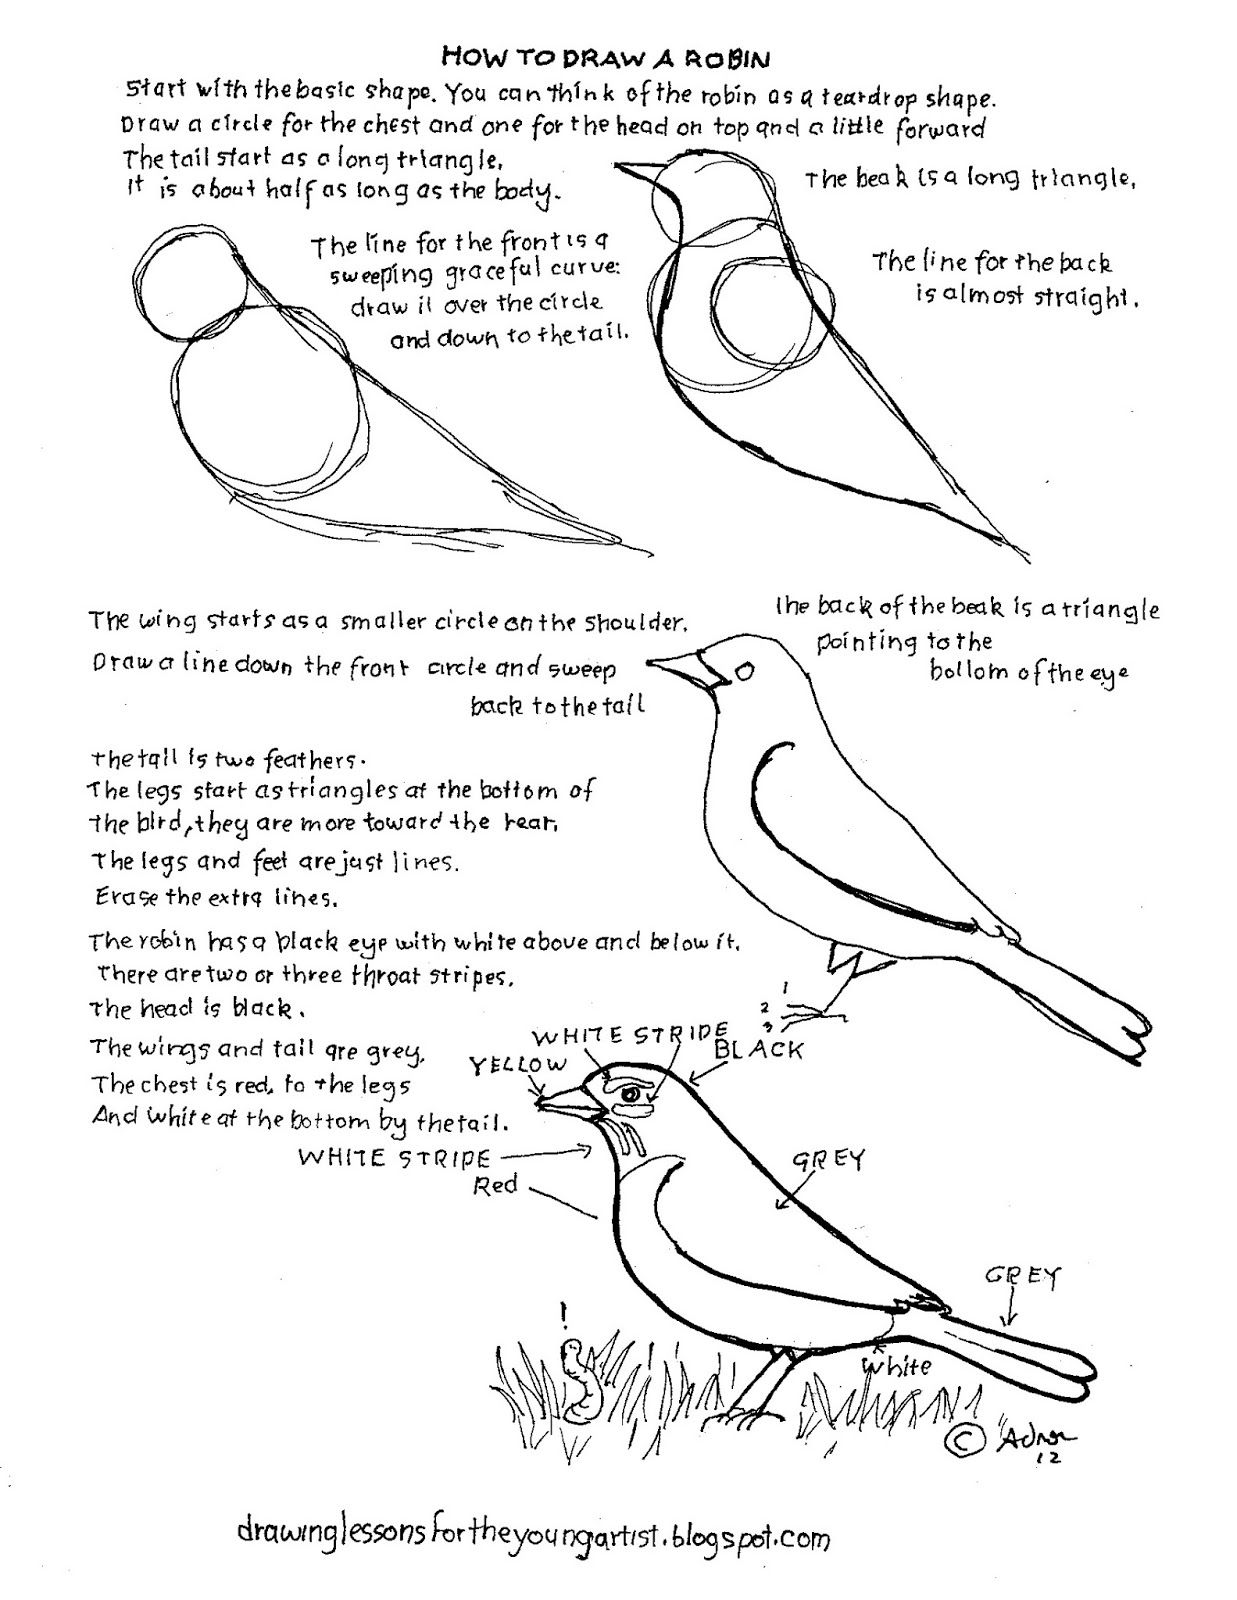 How To Draw A Robin Bird Drawing Worksheet For A Young